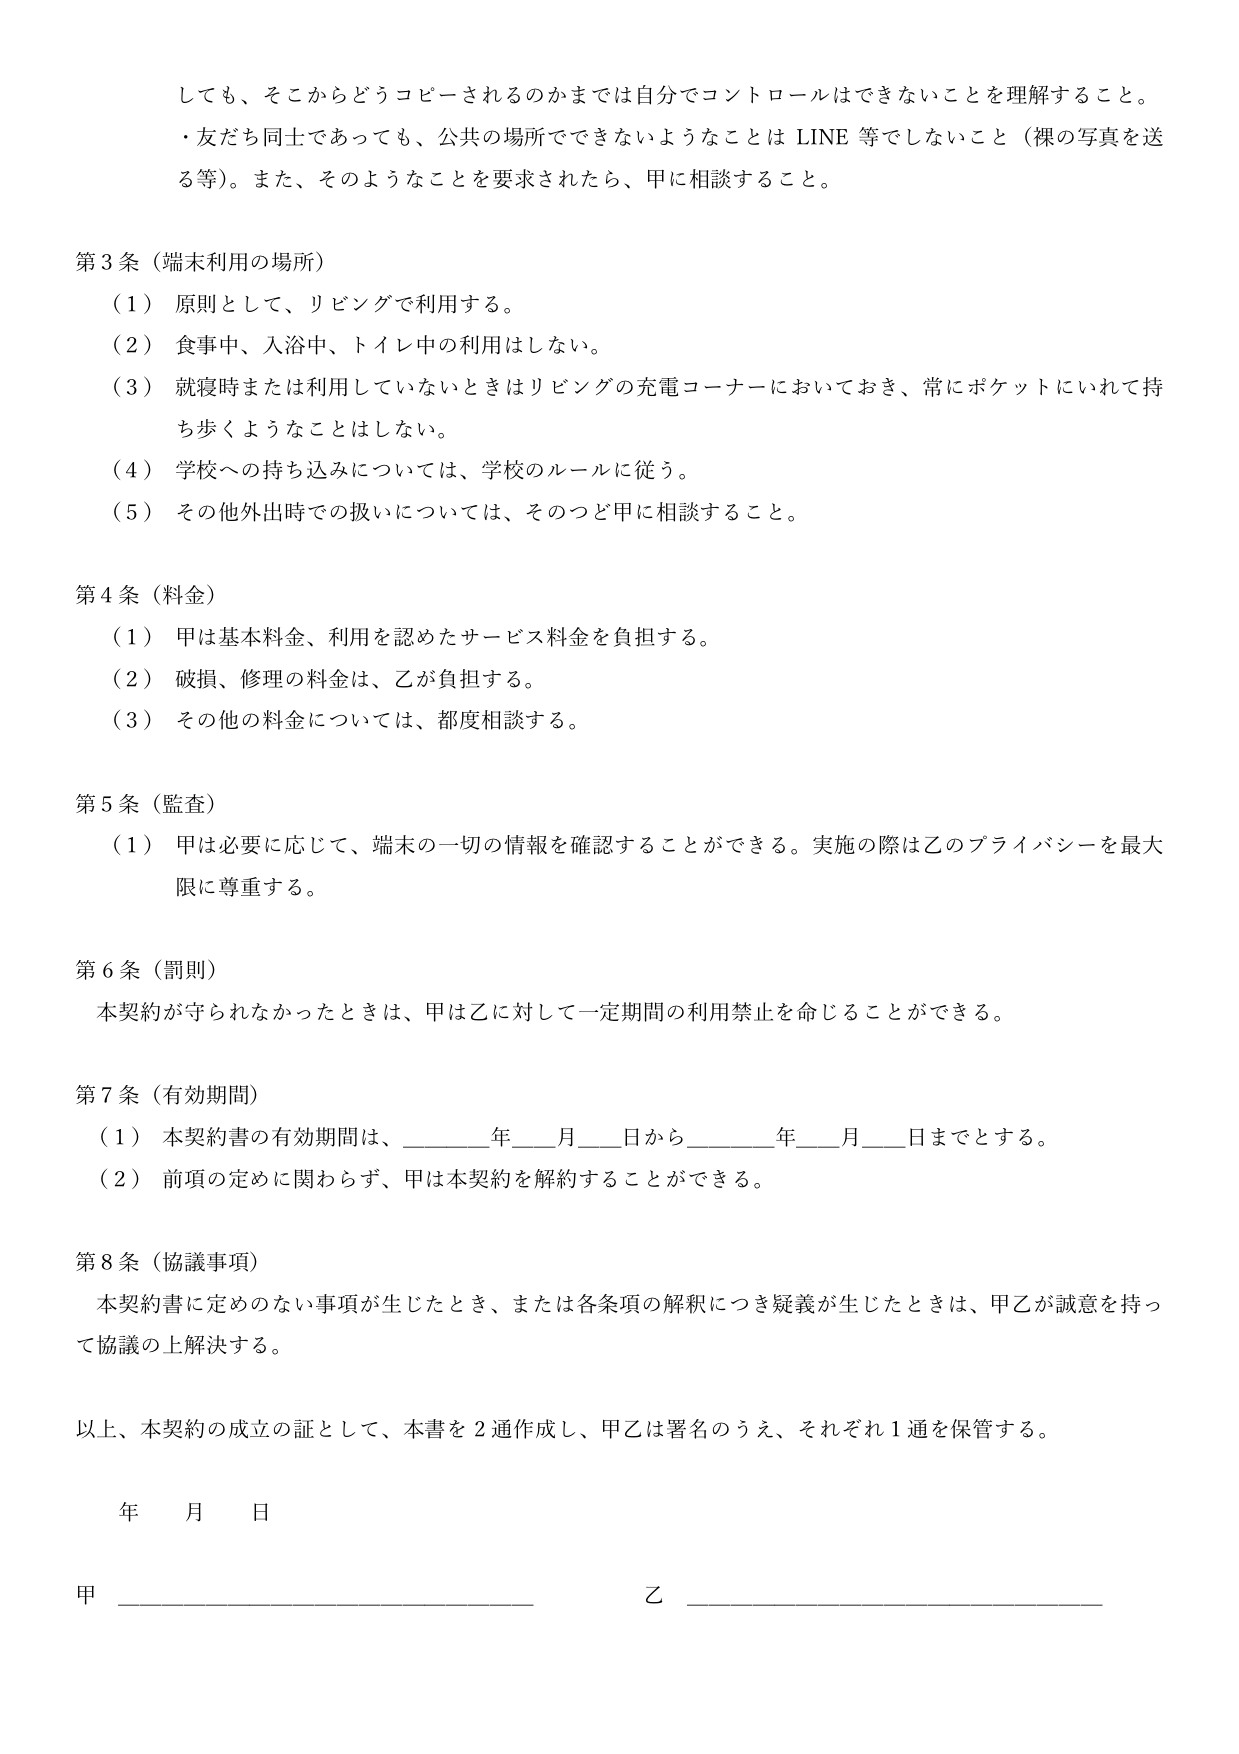 iphone-use-agreement-2